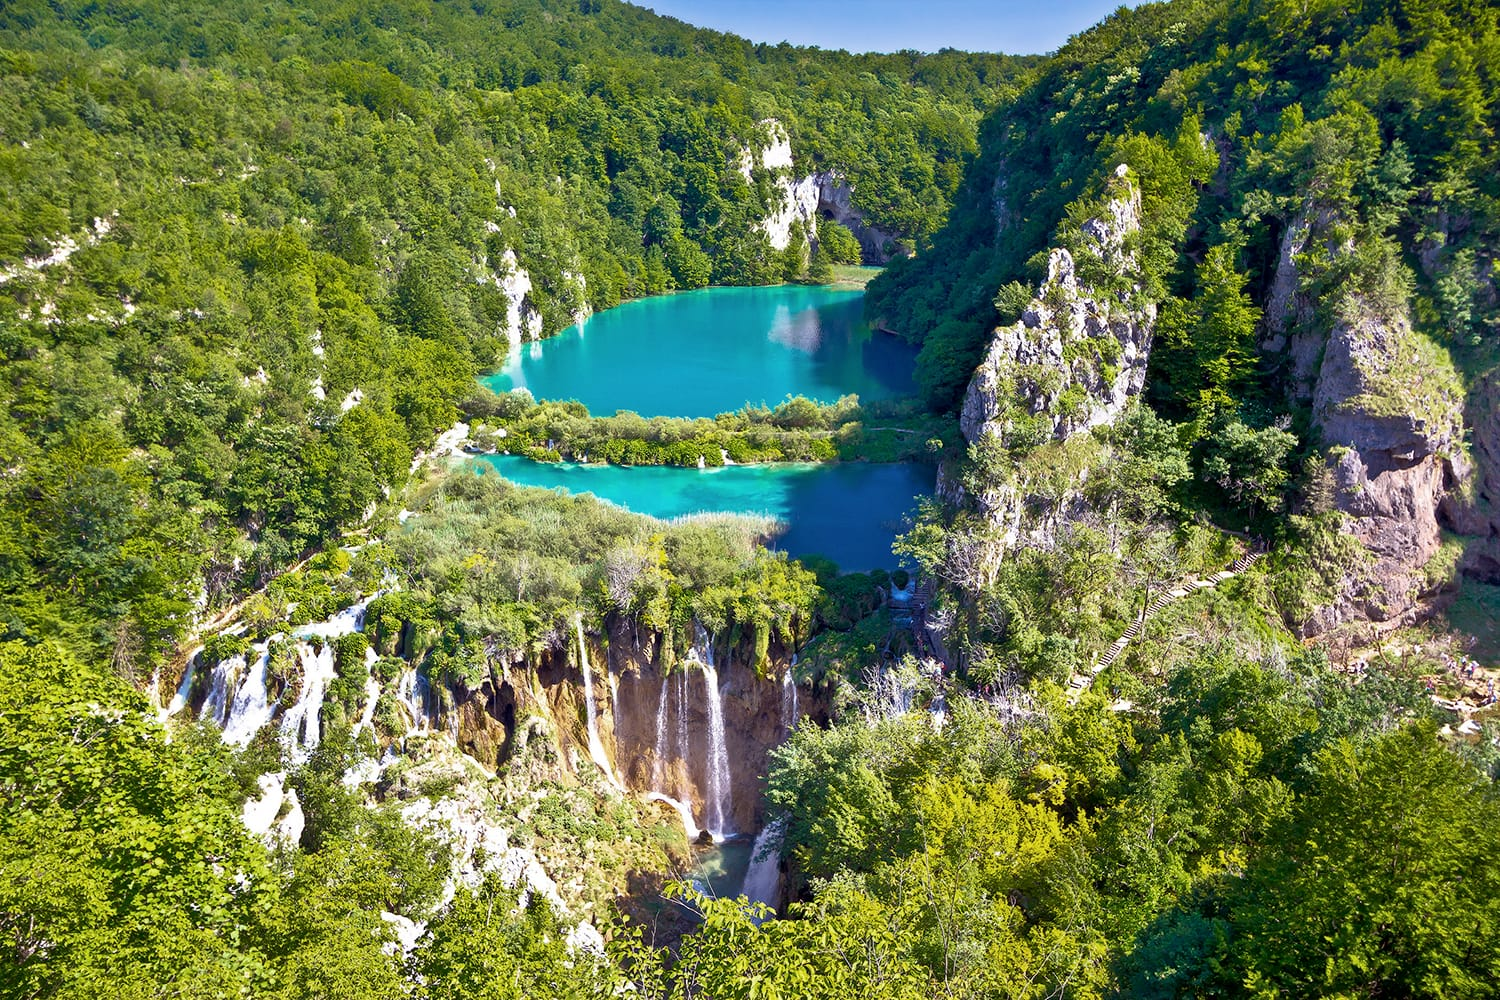 Paradise waterfalls of Plitvice lakes national park, panoramic view, Croatia